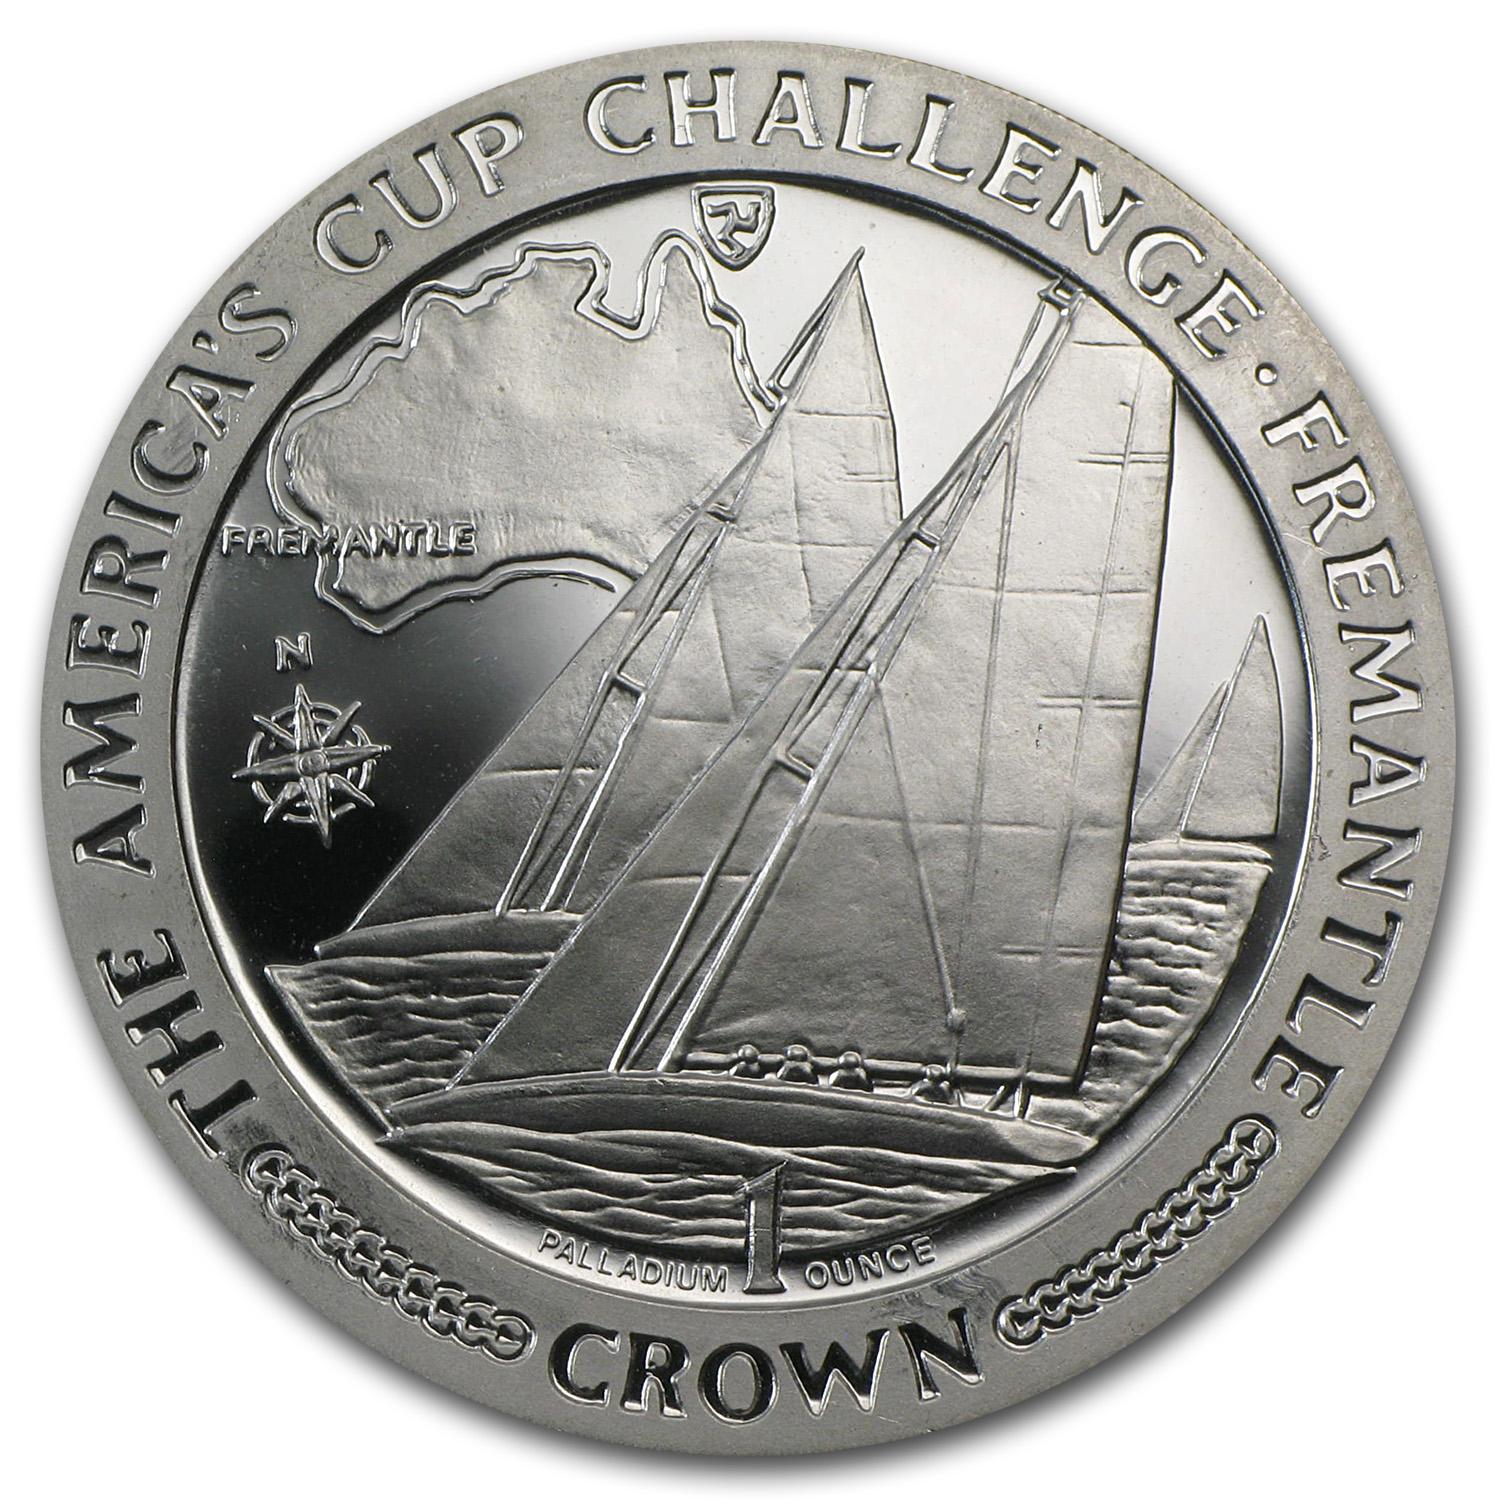 1987 1 oz Palladium Isle of Man America's Cup Challenge Proof